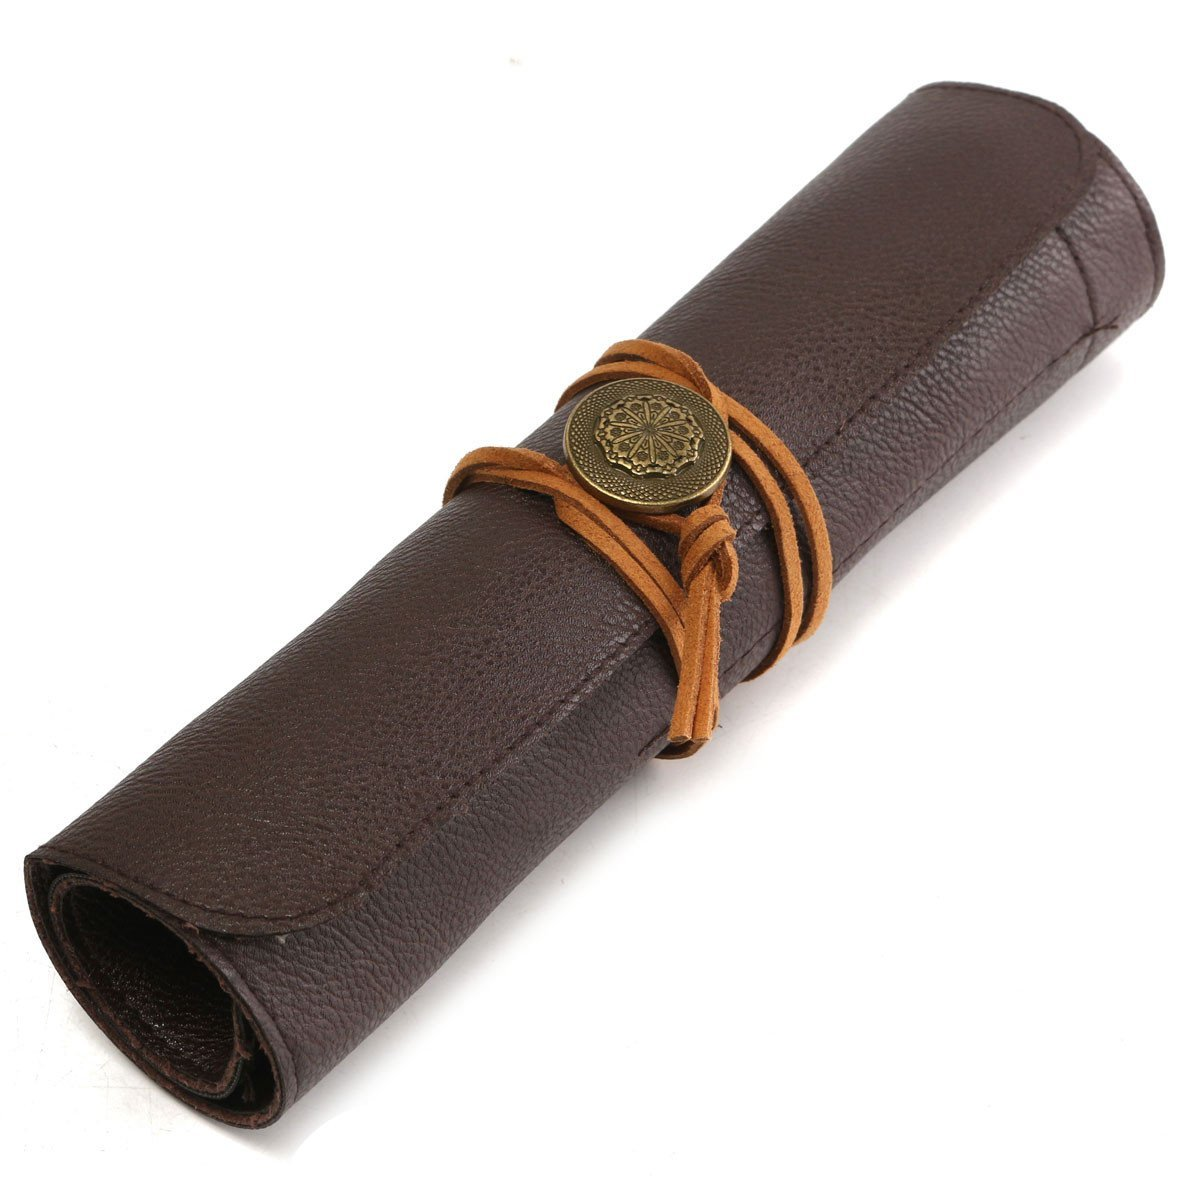 Letbo New Stone Carving Tool Bag Scabbard Can Roll Not Genuine PU Leather Tool Bag